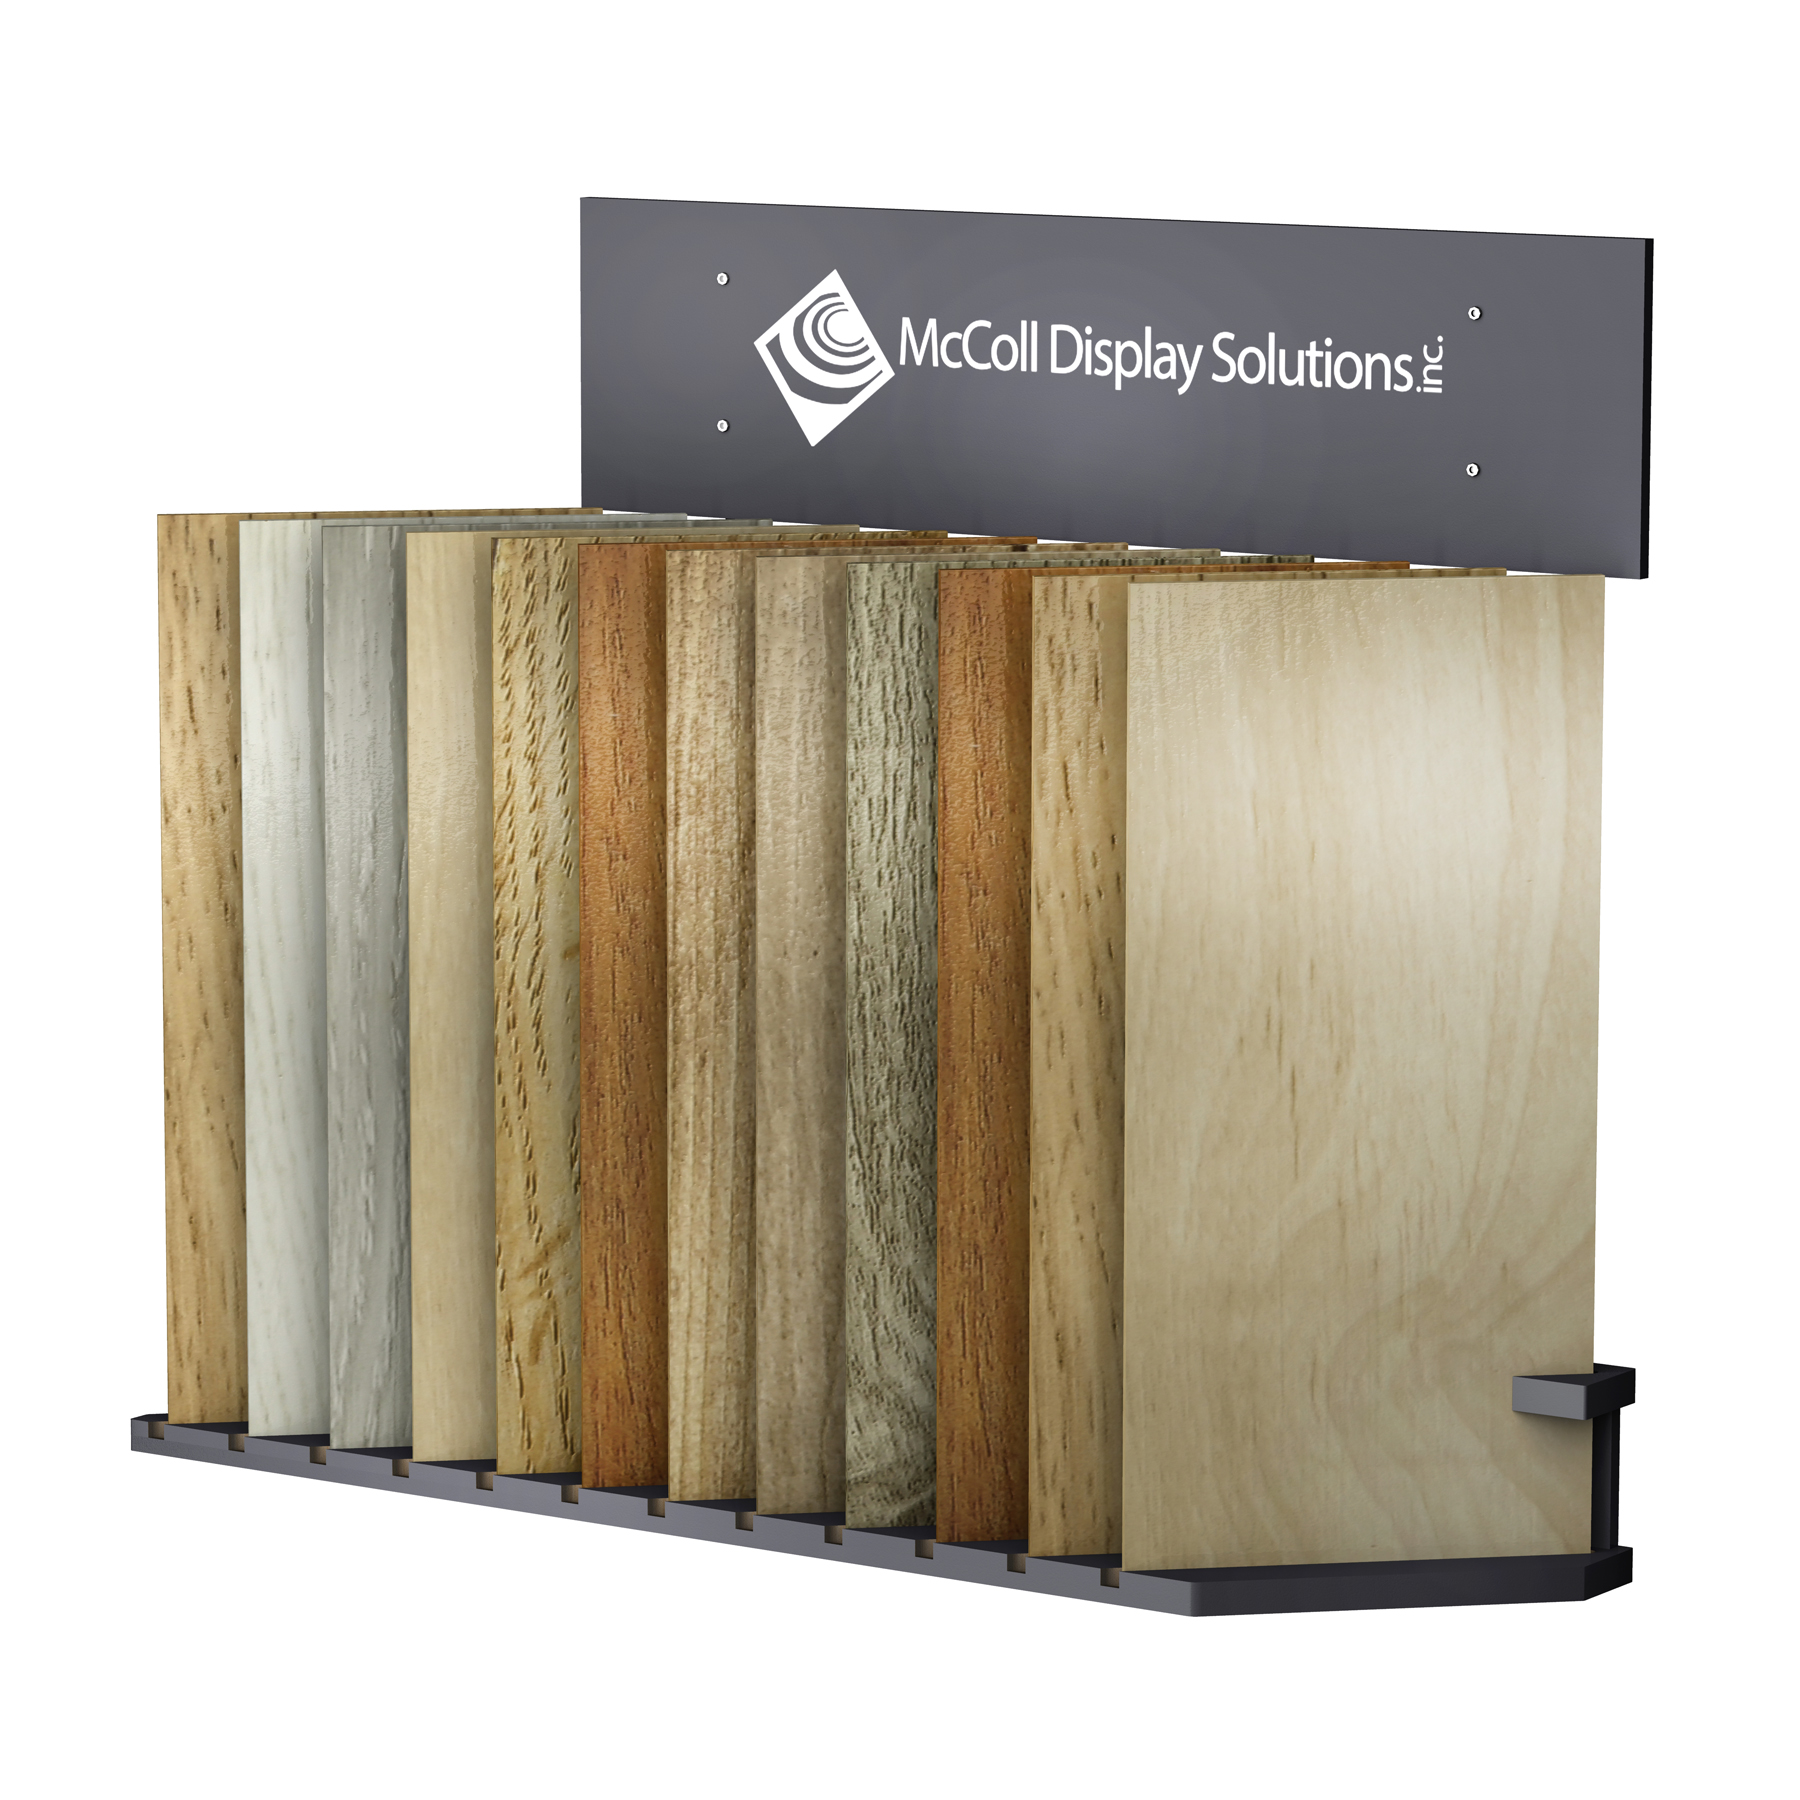 CD100 Slotted Floor Stand with Signage Displays Hardwood or Laminate Planks as well as Tile Marble Stone Flooring Samples